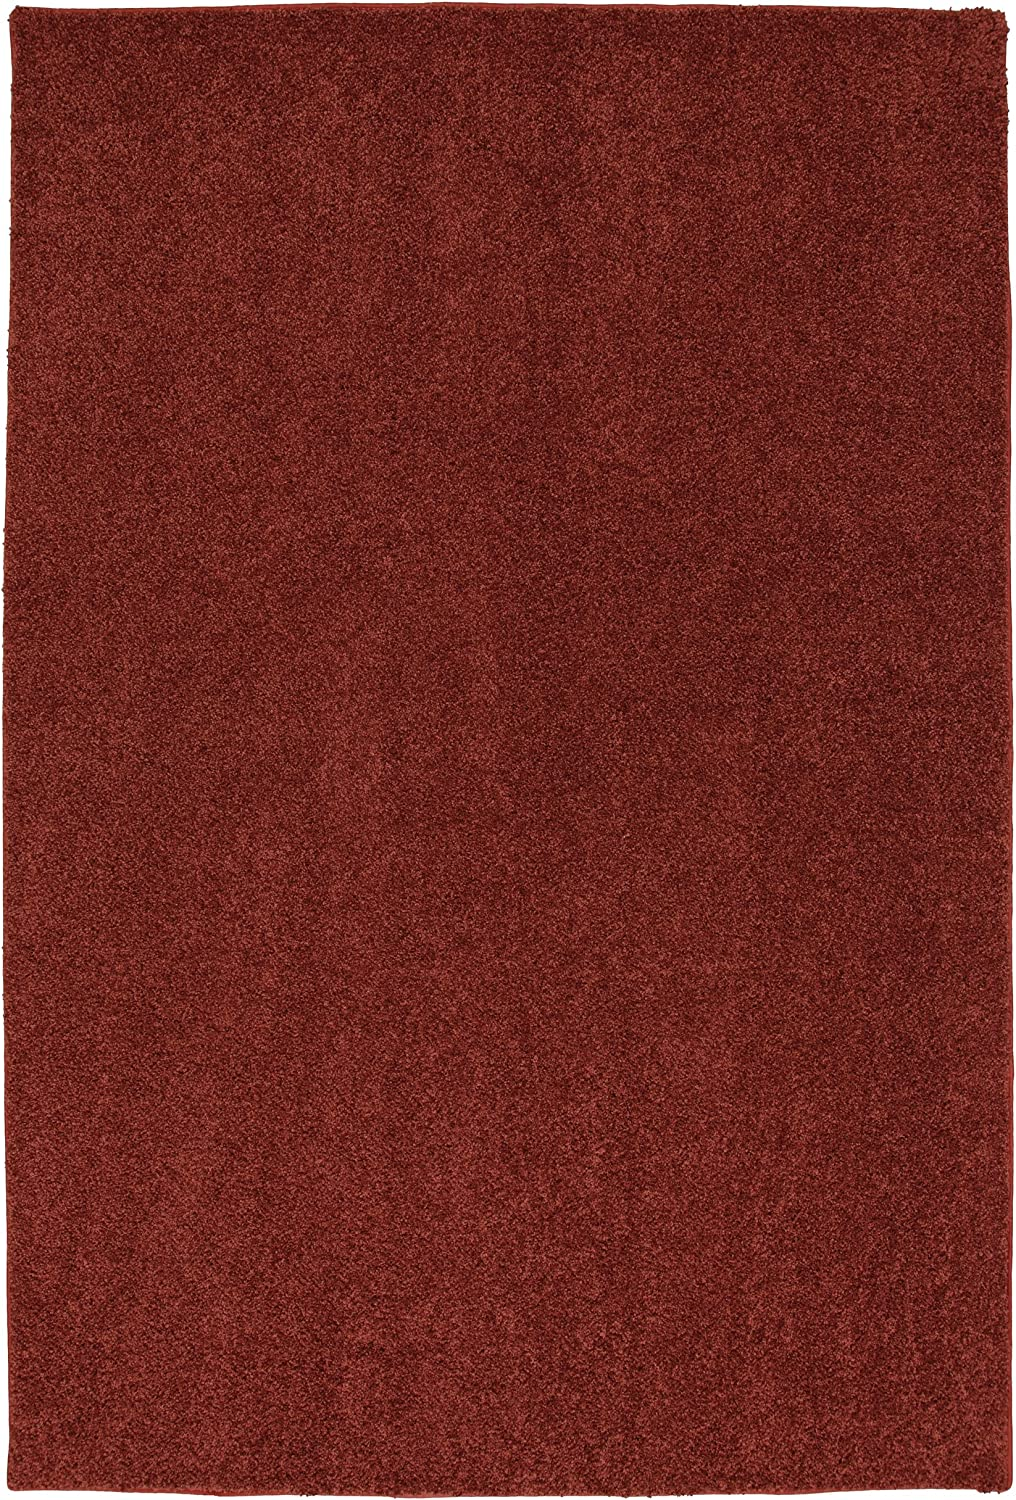 Townhouse Rugs Mohawk Home Smart Strand Satin Woven Rug, 6'x9', Country Apple